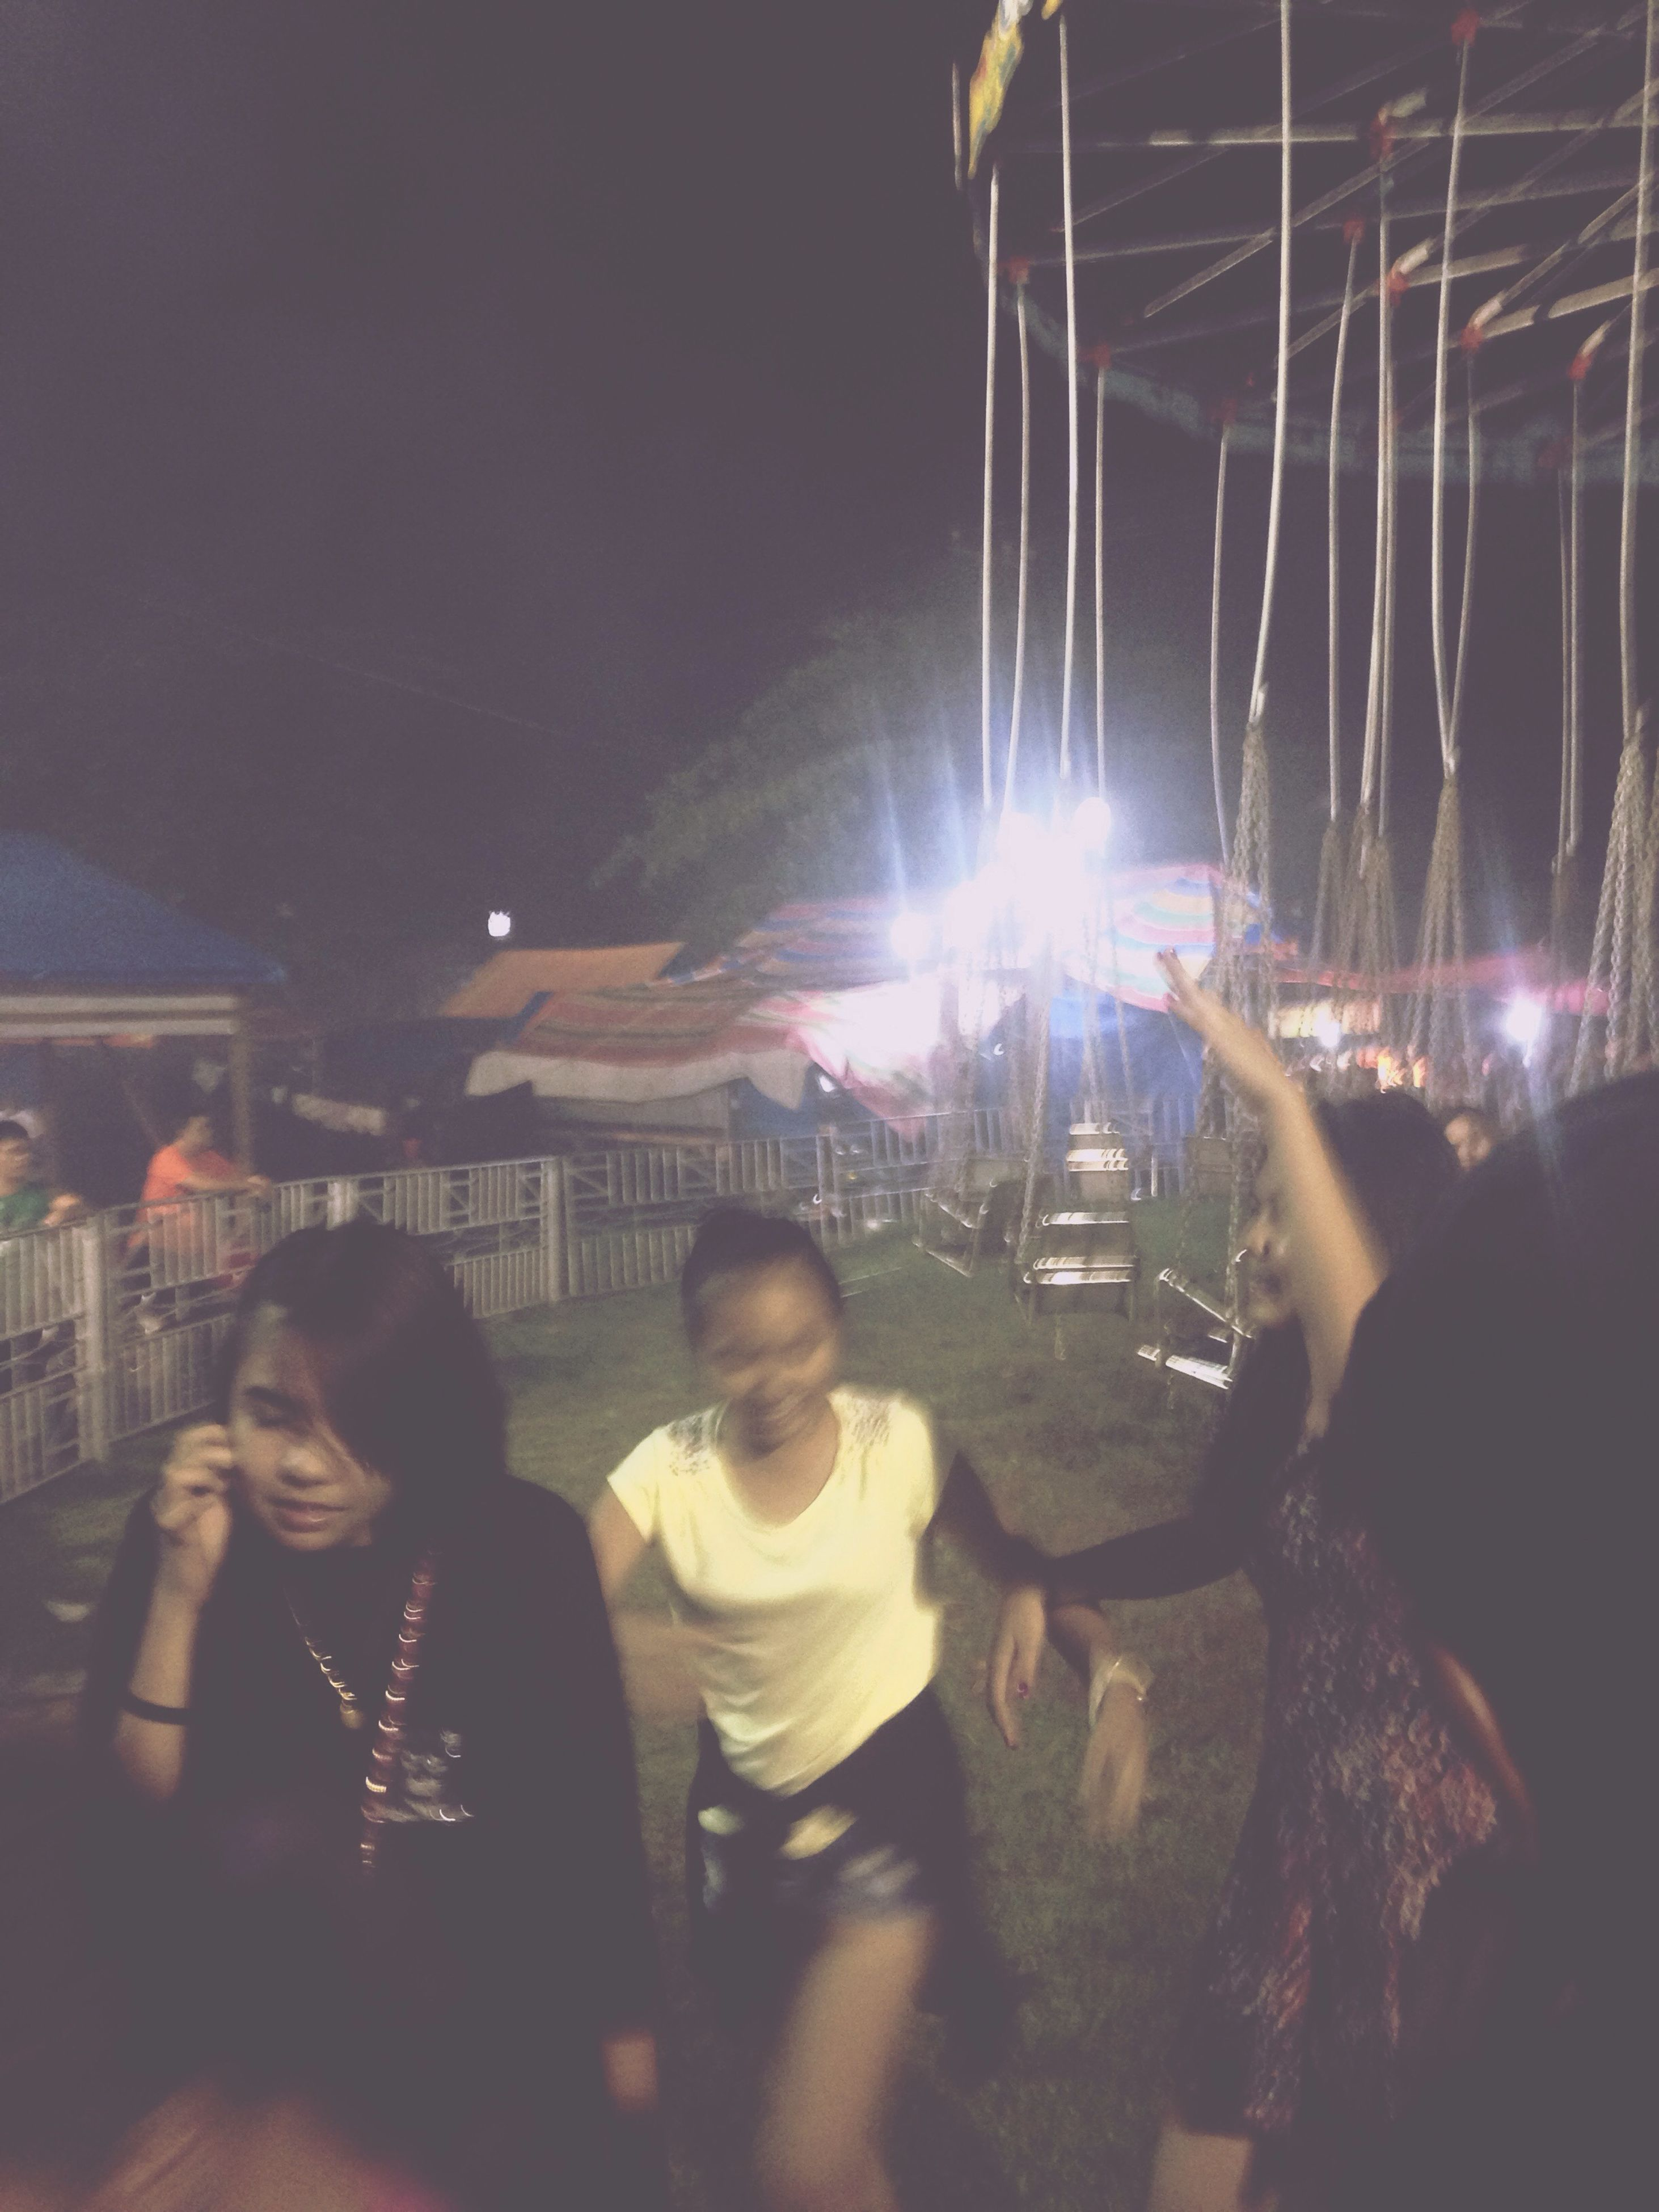 lifestyles, leisure activity, illuminated, togetherness, men, night, enjoyment, casual clothing, fun, sitting, arts culture and entertainment, standing, person, bonding, large group of people, lighting equipment, friendship